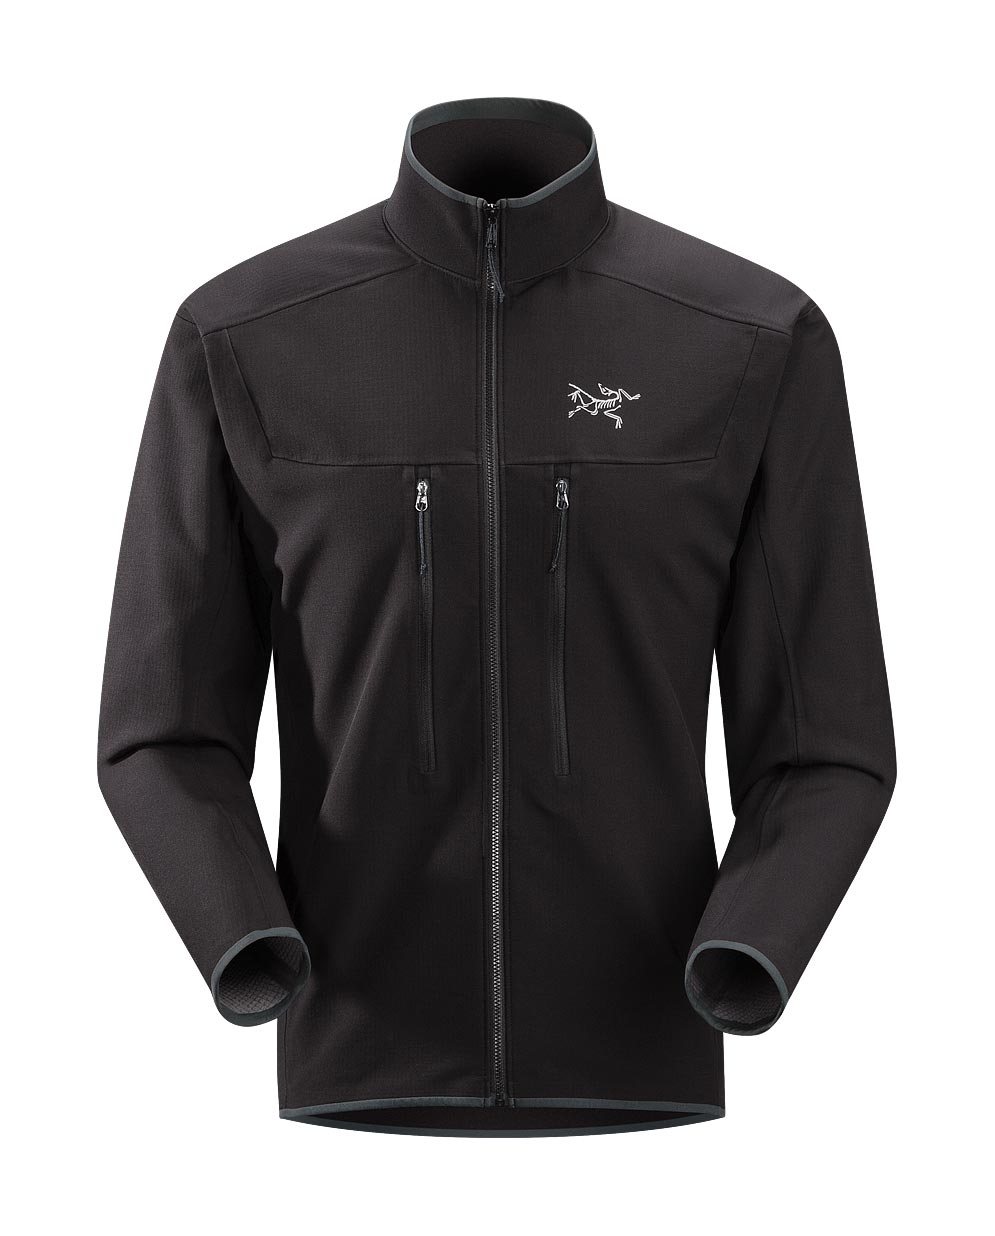 Arcteryx Black Acto MX Jacket